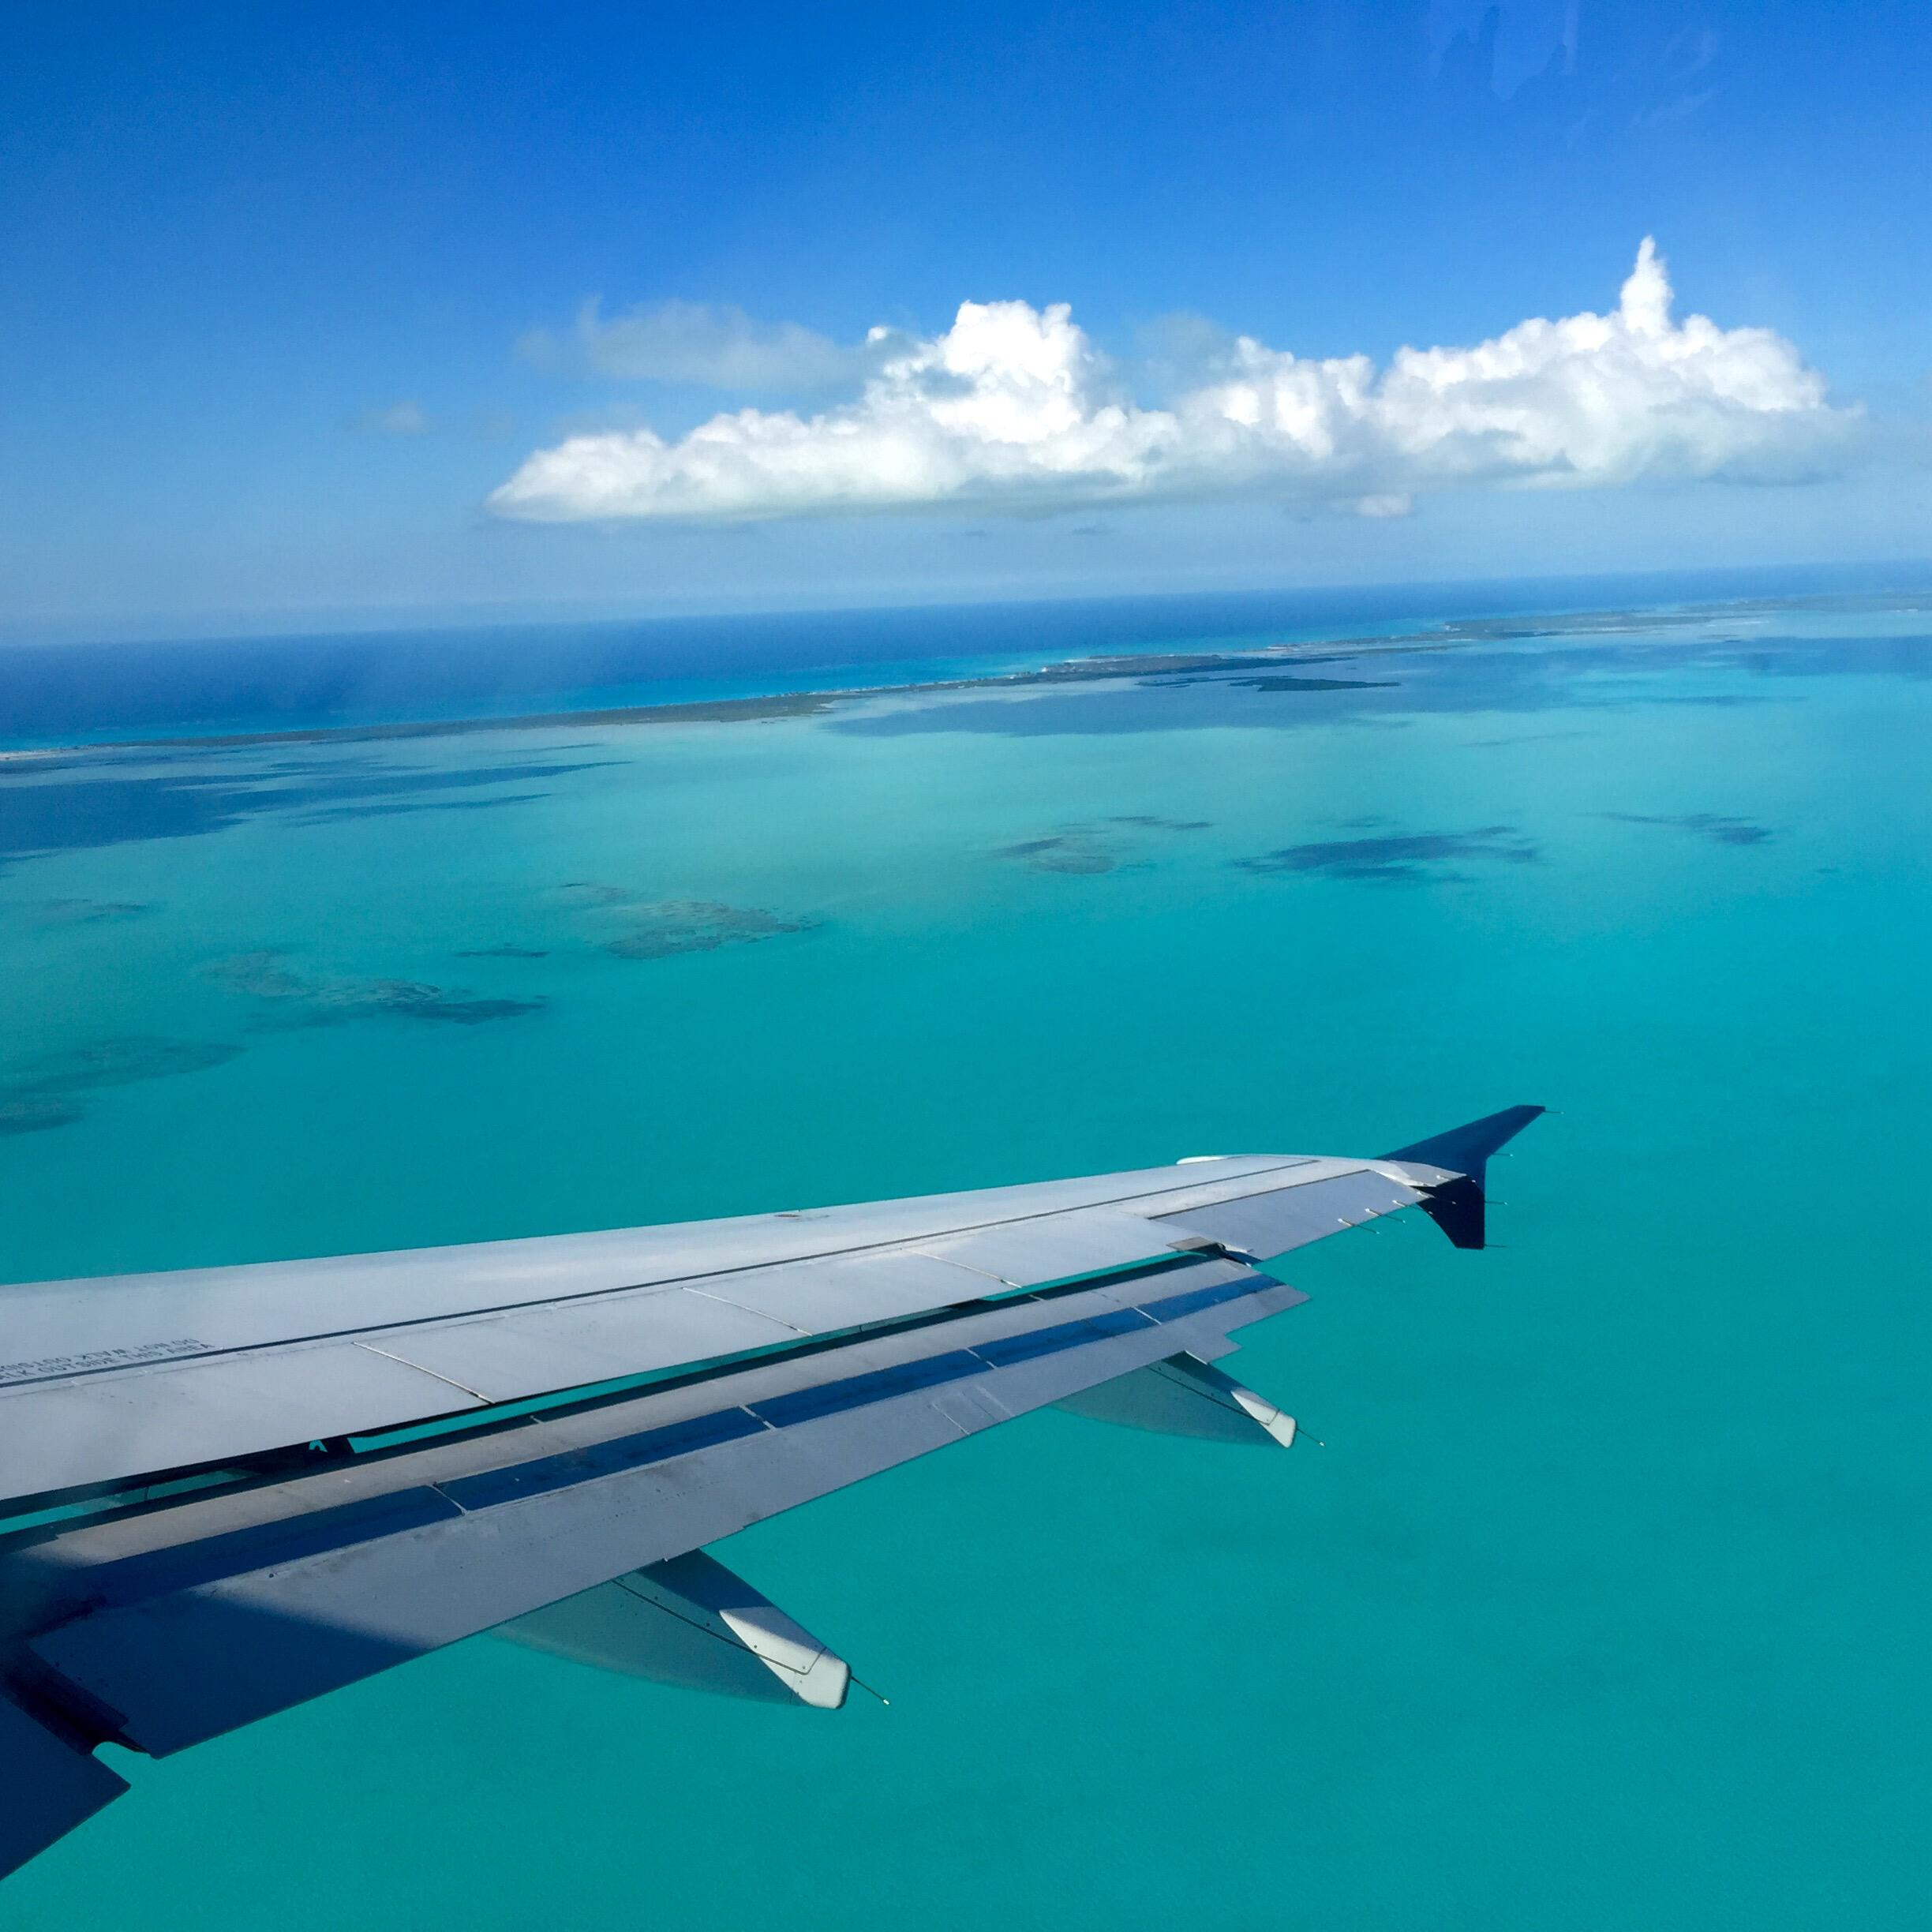 Ocean view from the airplane over the Somerset On Grace Bay